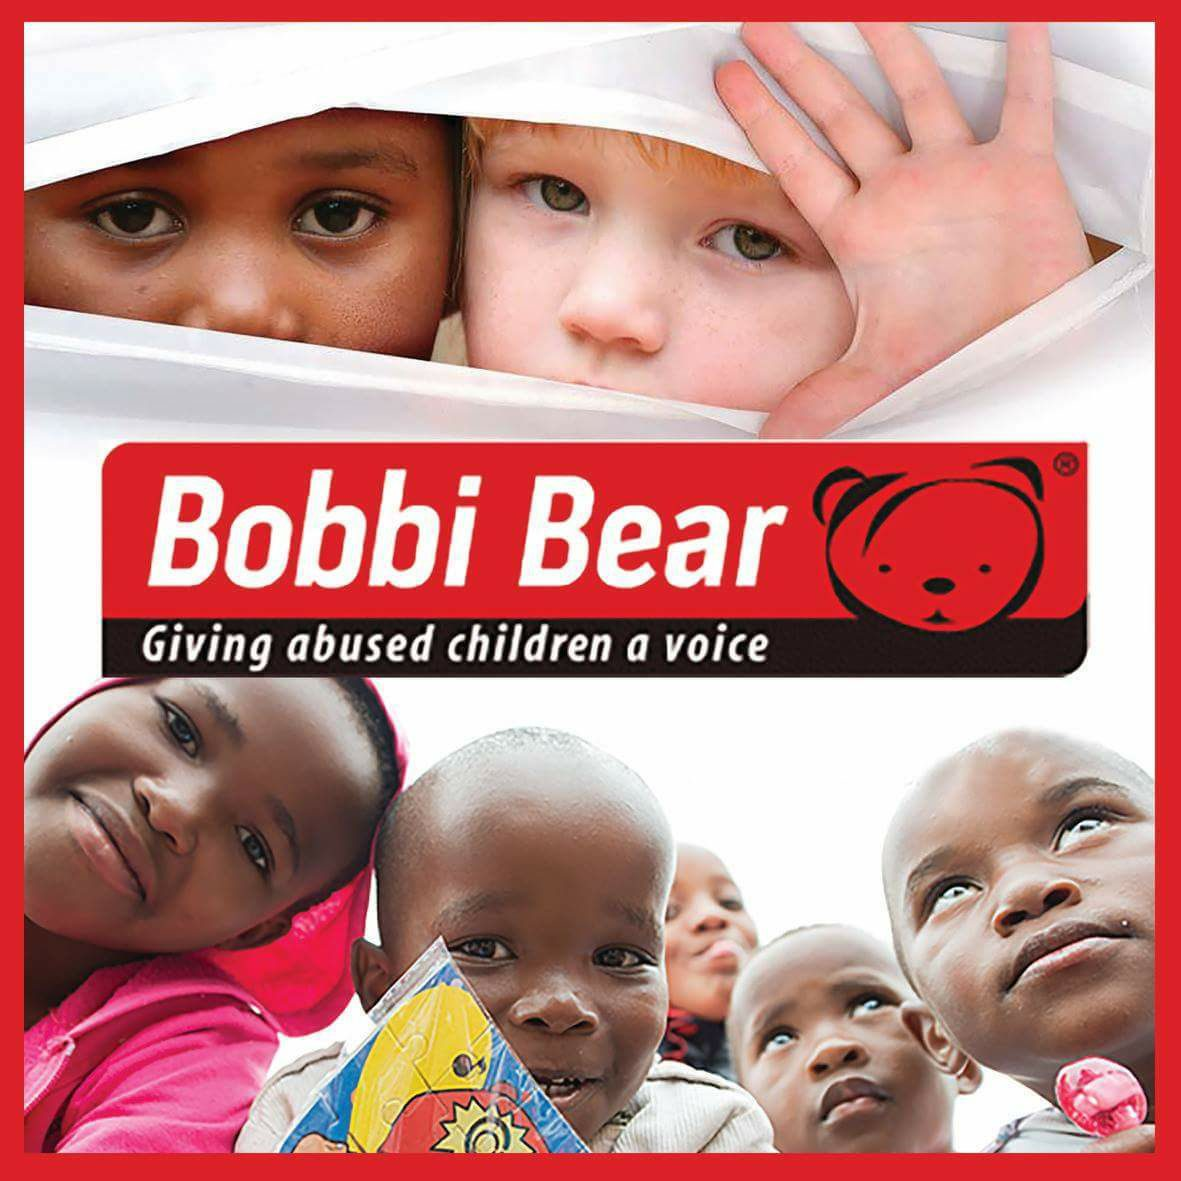 Stichting Bobbi Bear Nederland